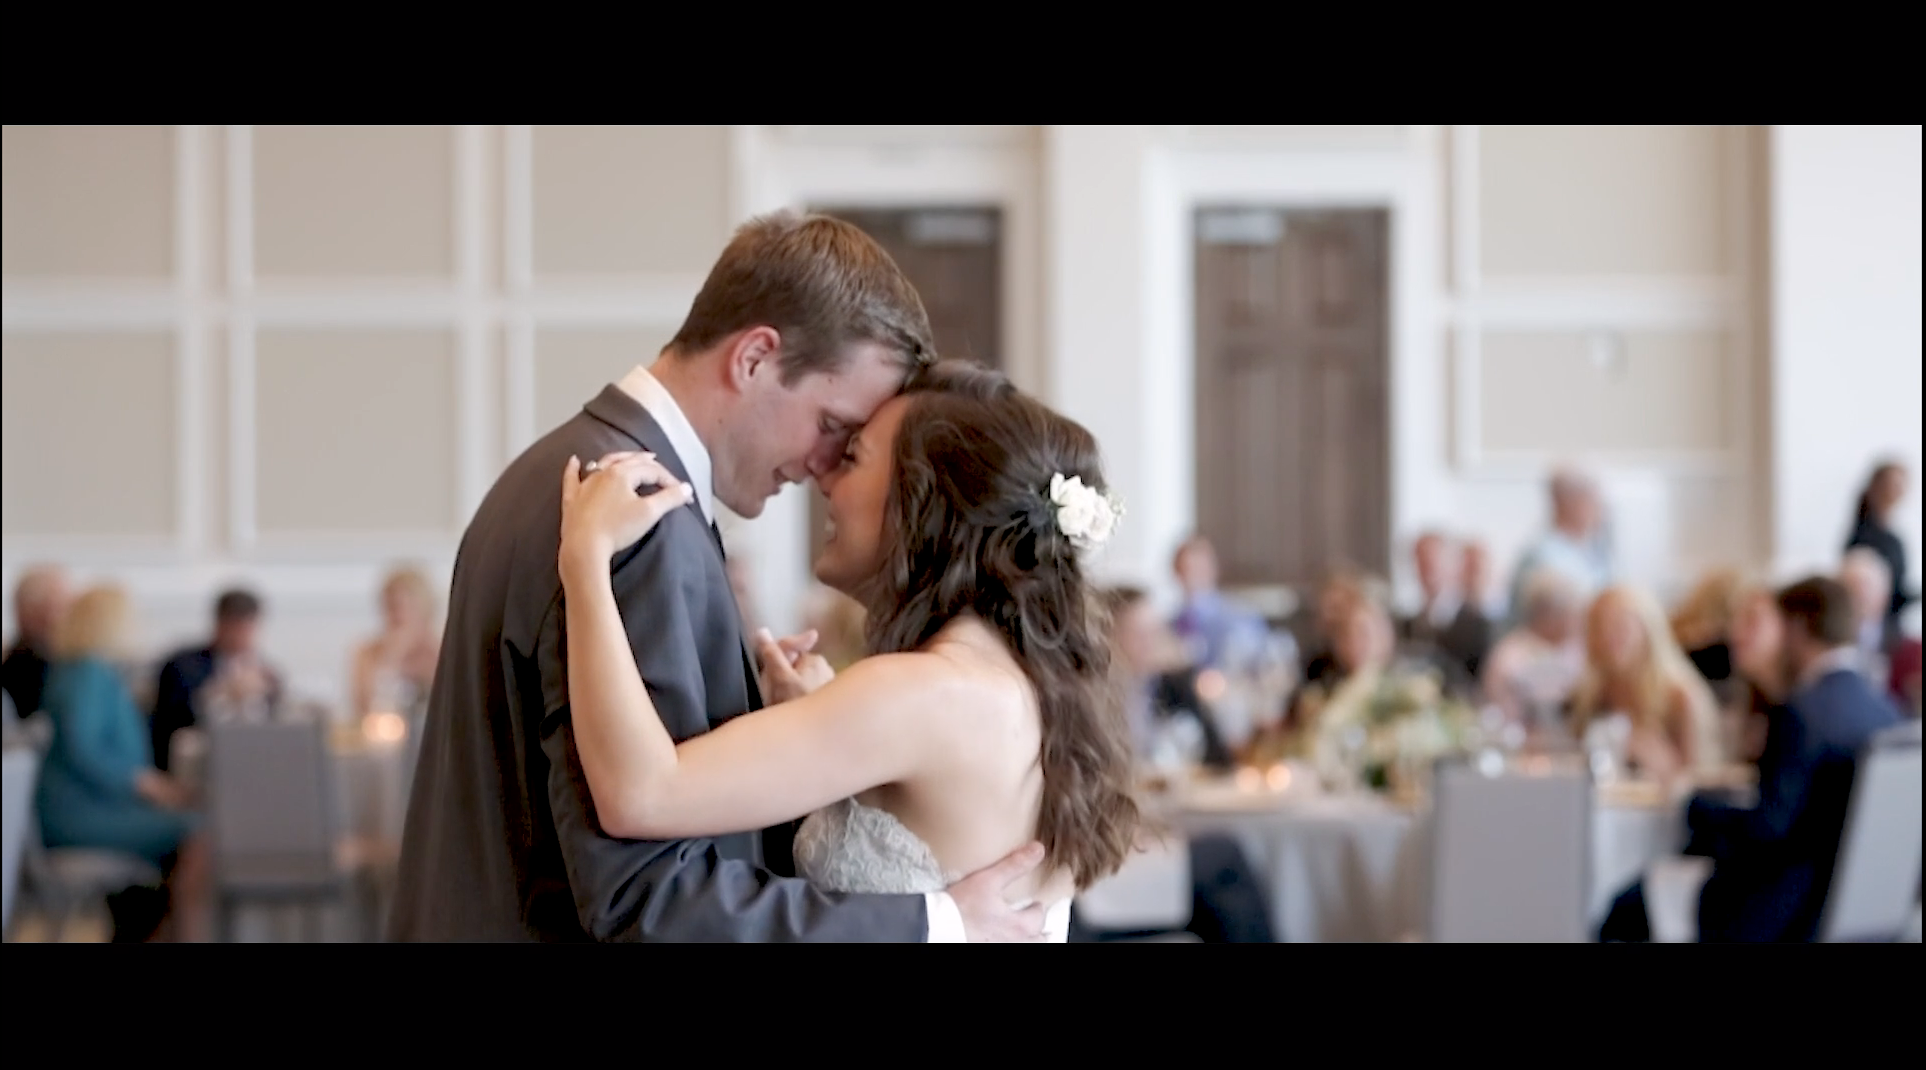 Tiffany + Drue | Keller, Texas | The Bowden Weddings and Events